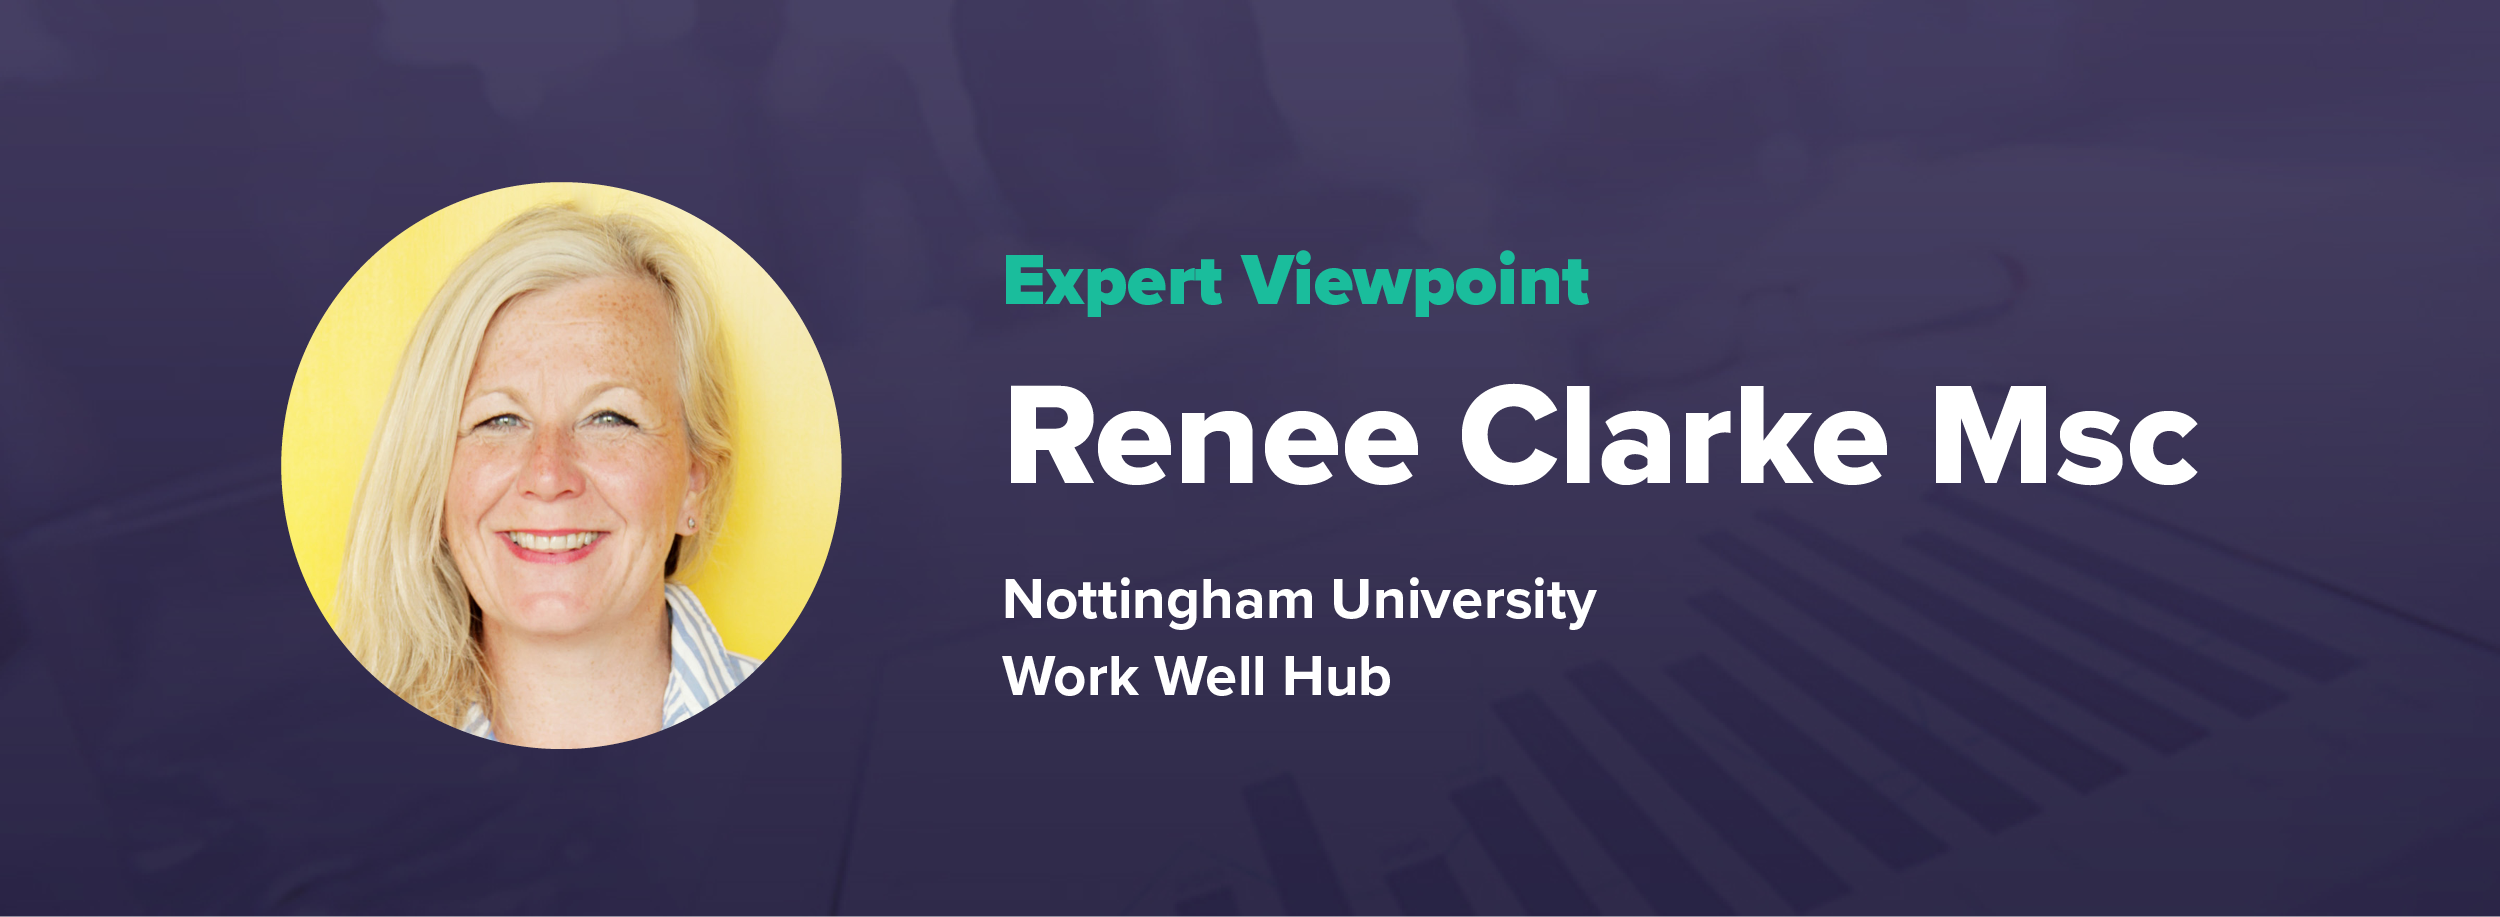 Expert Viewpoint: Creating a Thriving Workplace Wellbeing Culture